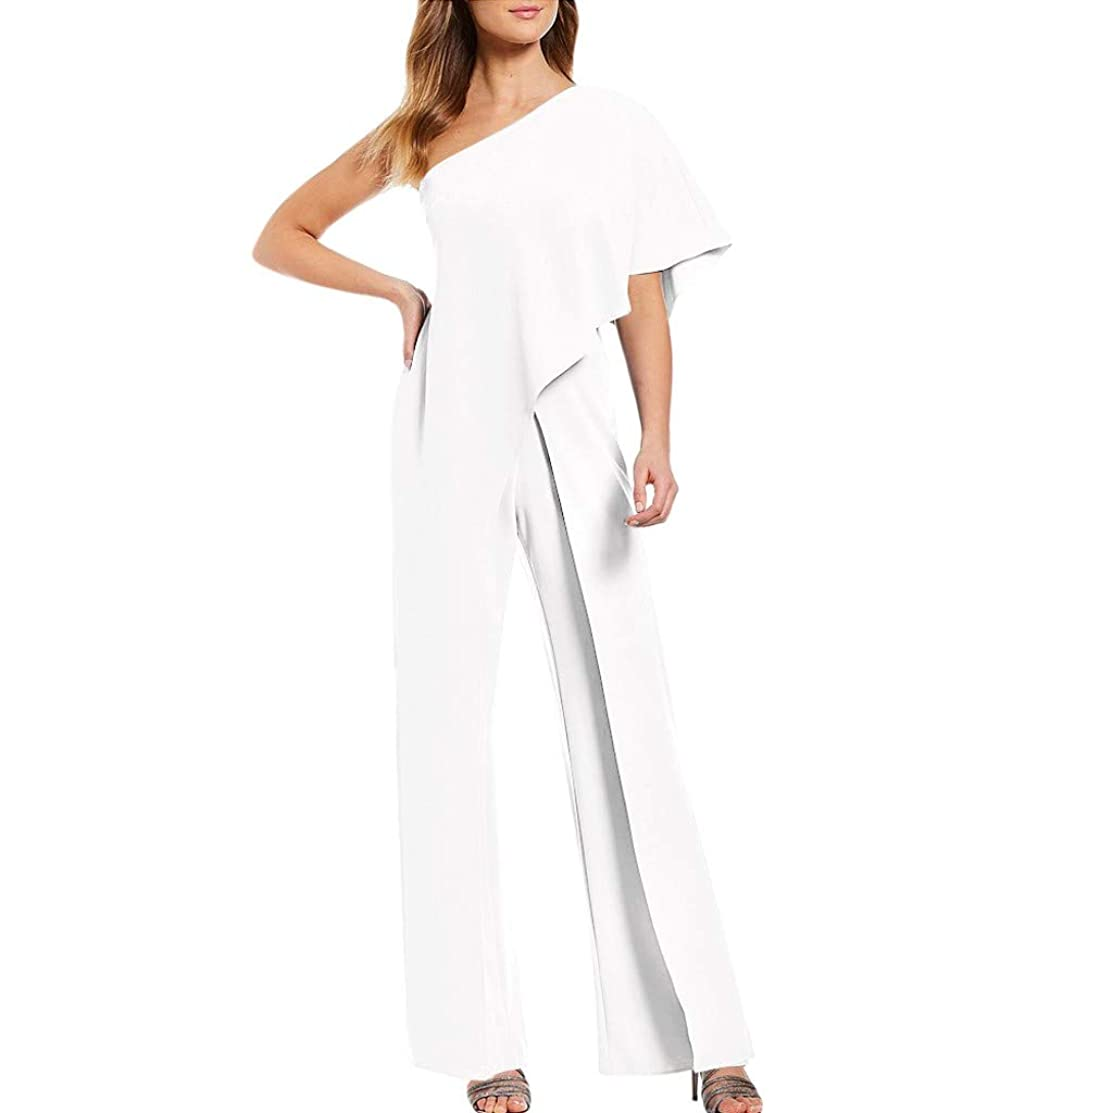 Kexdaaf Long Jumpsuit, 2019 New Womens Ladies Solid Cold Shoulder Casual Loose High Waist Playsuit Party Elegant Trouser